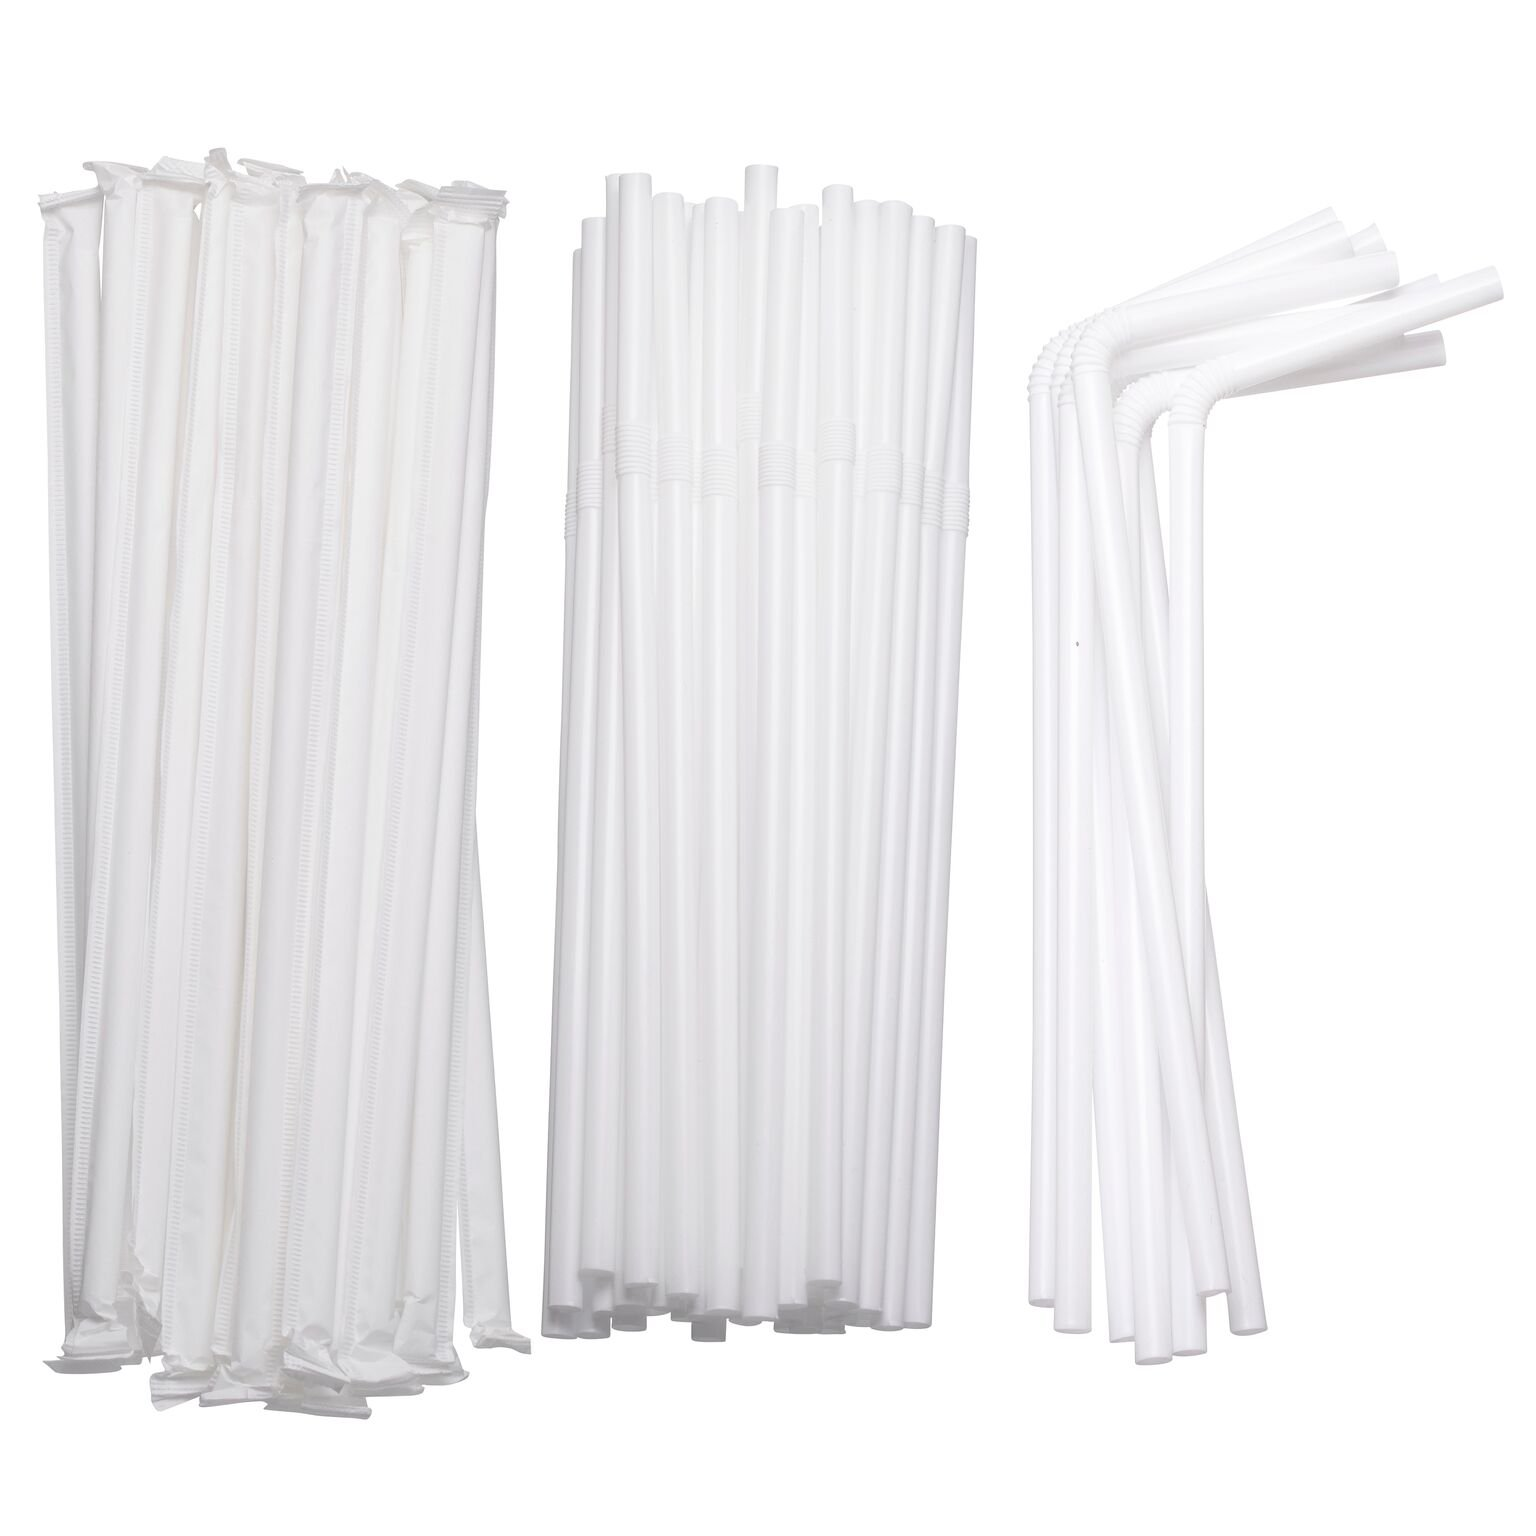 Flexible Drinking Straws in Bulk for Cold Hot Drinks Parties 7 3/4 Inches Long Individually Wrapped & Disposable, White in Color & Food-Safe BPA-Free Plastic eDayDeal HomeGoods (4 Packs/1600 Straws)